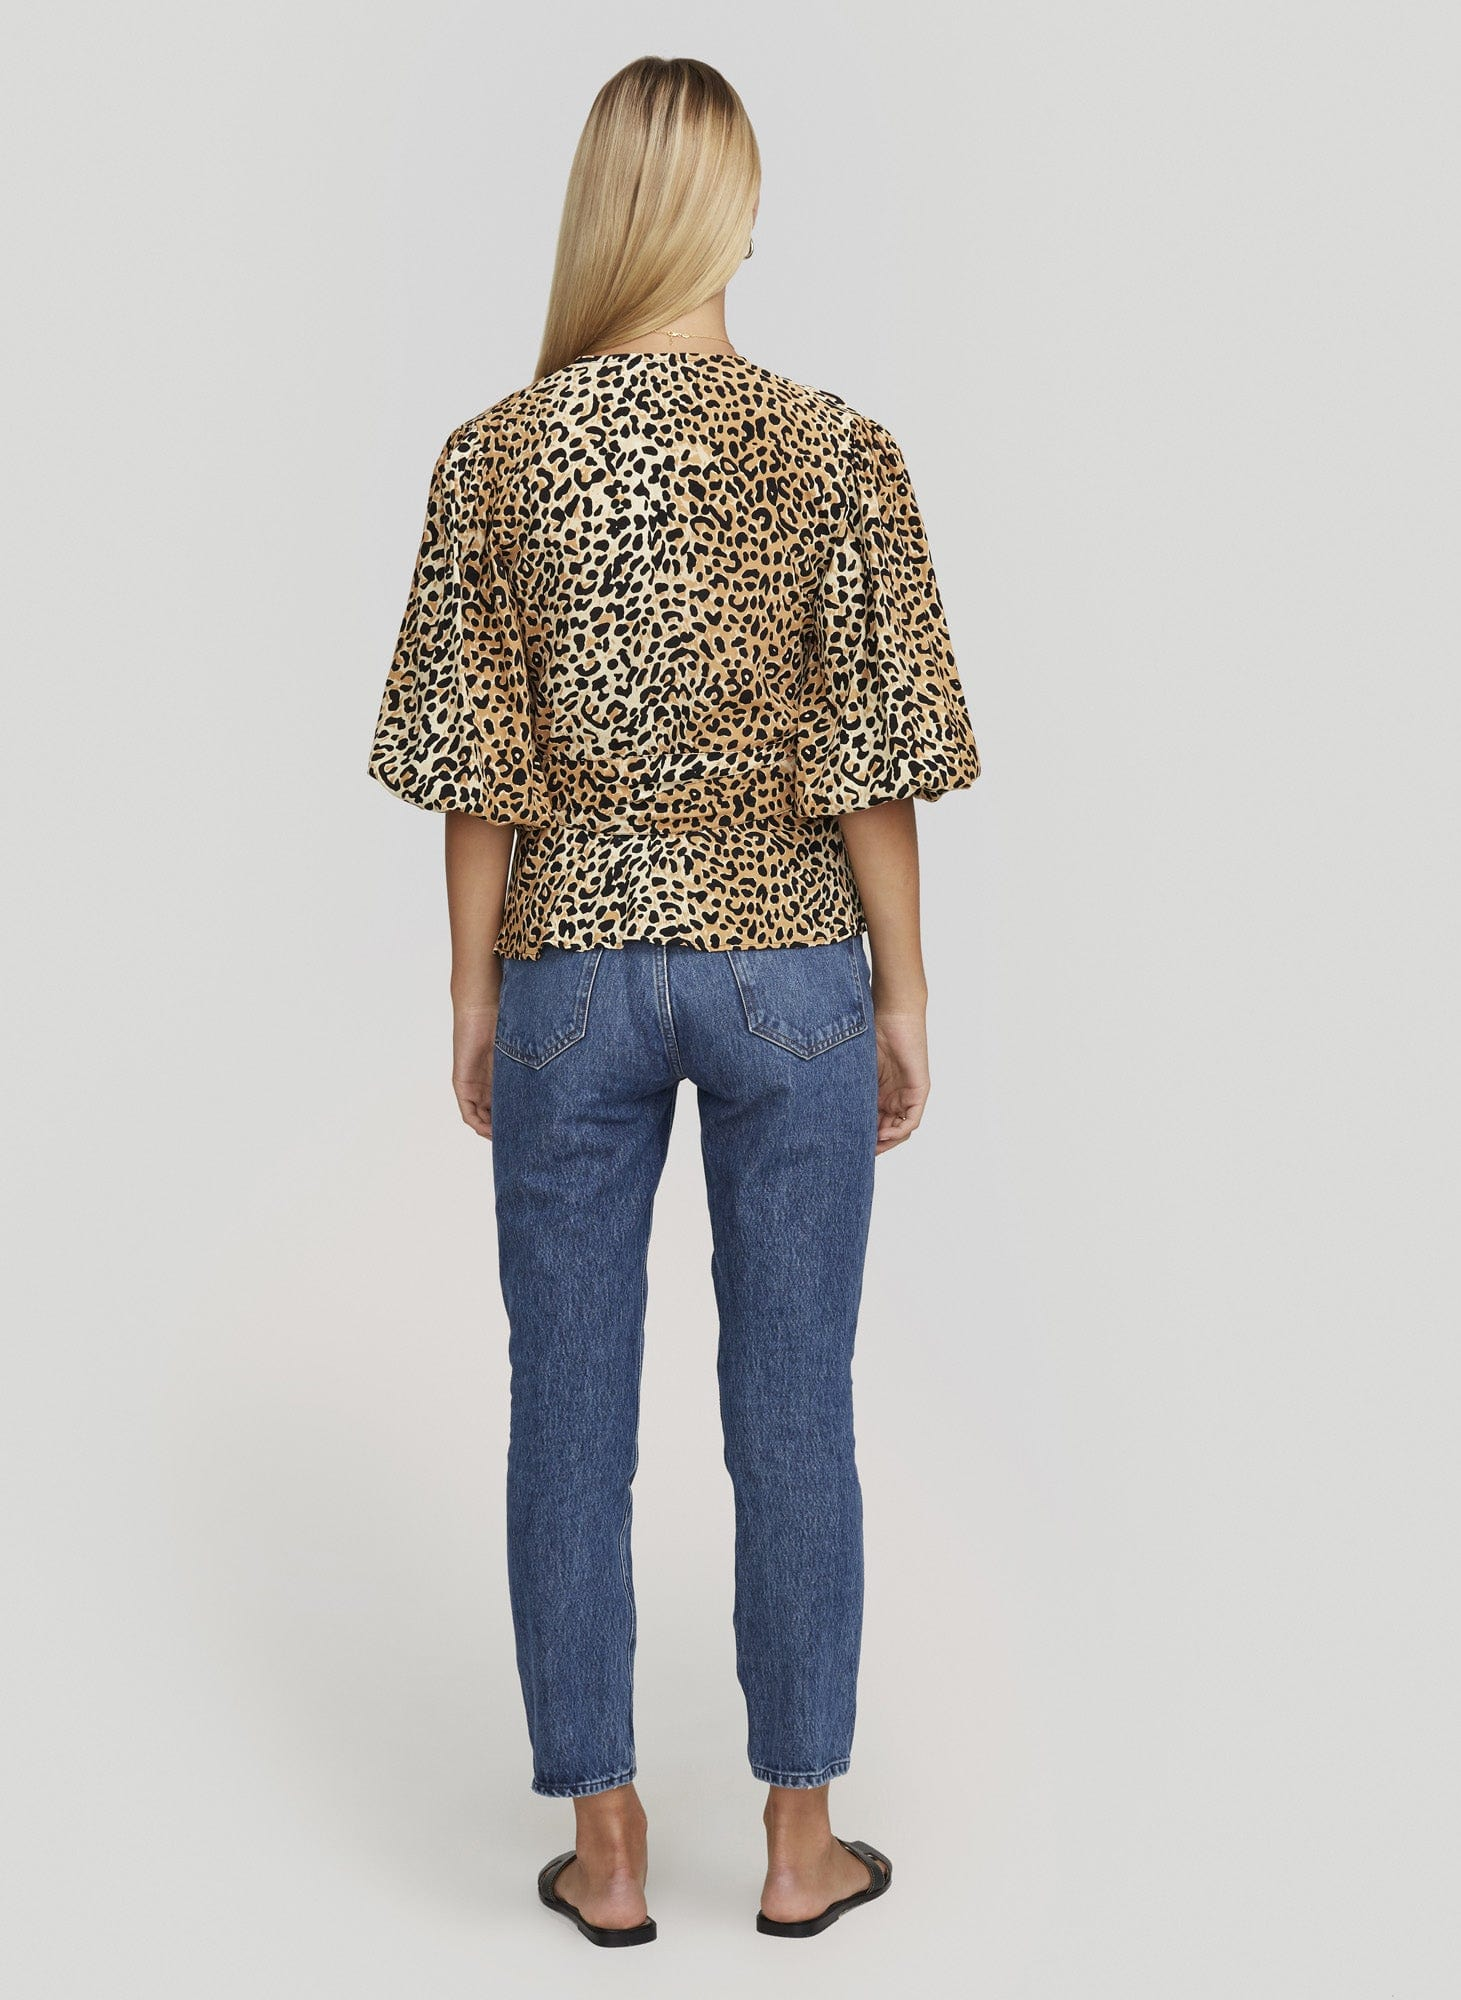 LE CINQ ANIMAL PRINT - LAVENDER TOP